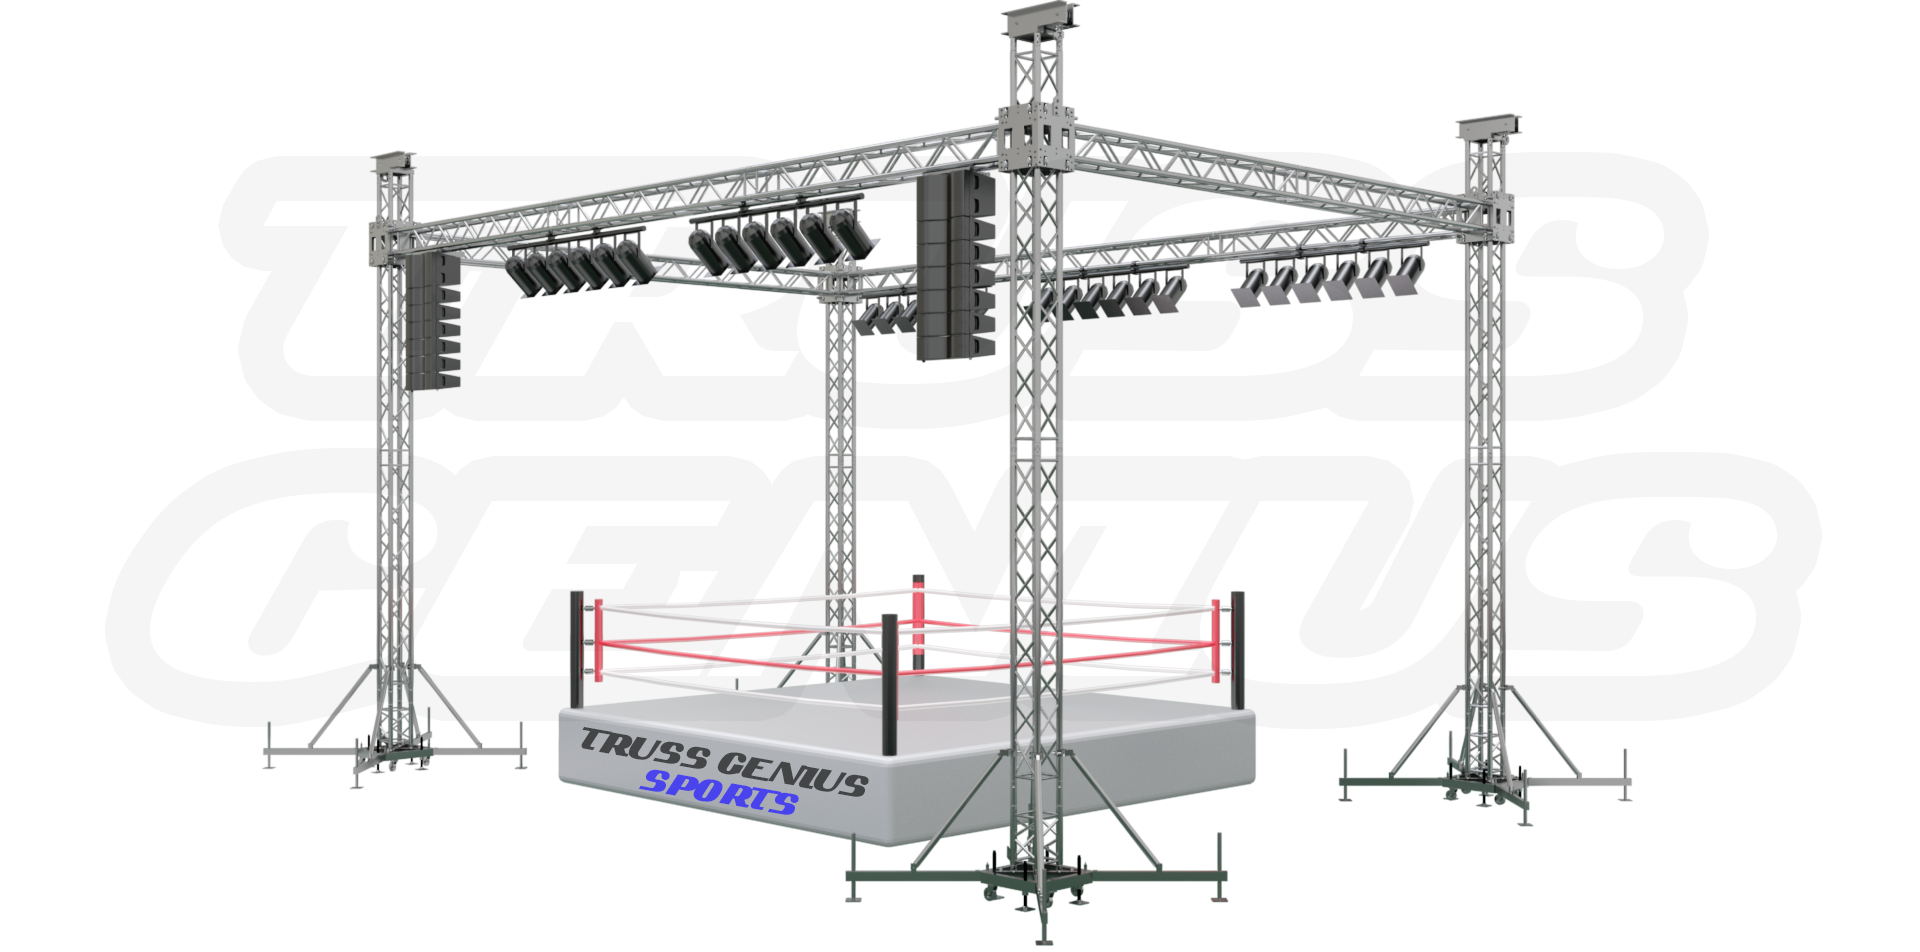 boxing, boxing ring truss, aluminum truss, global truss, ground support, sport event truss, truss system, truss genius, boxing competition, square truss